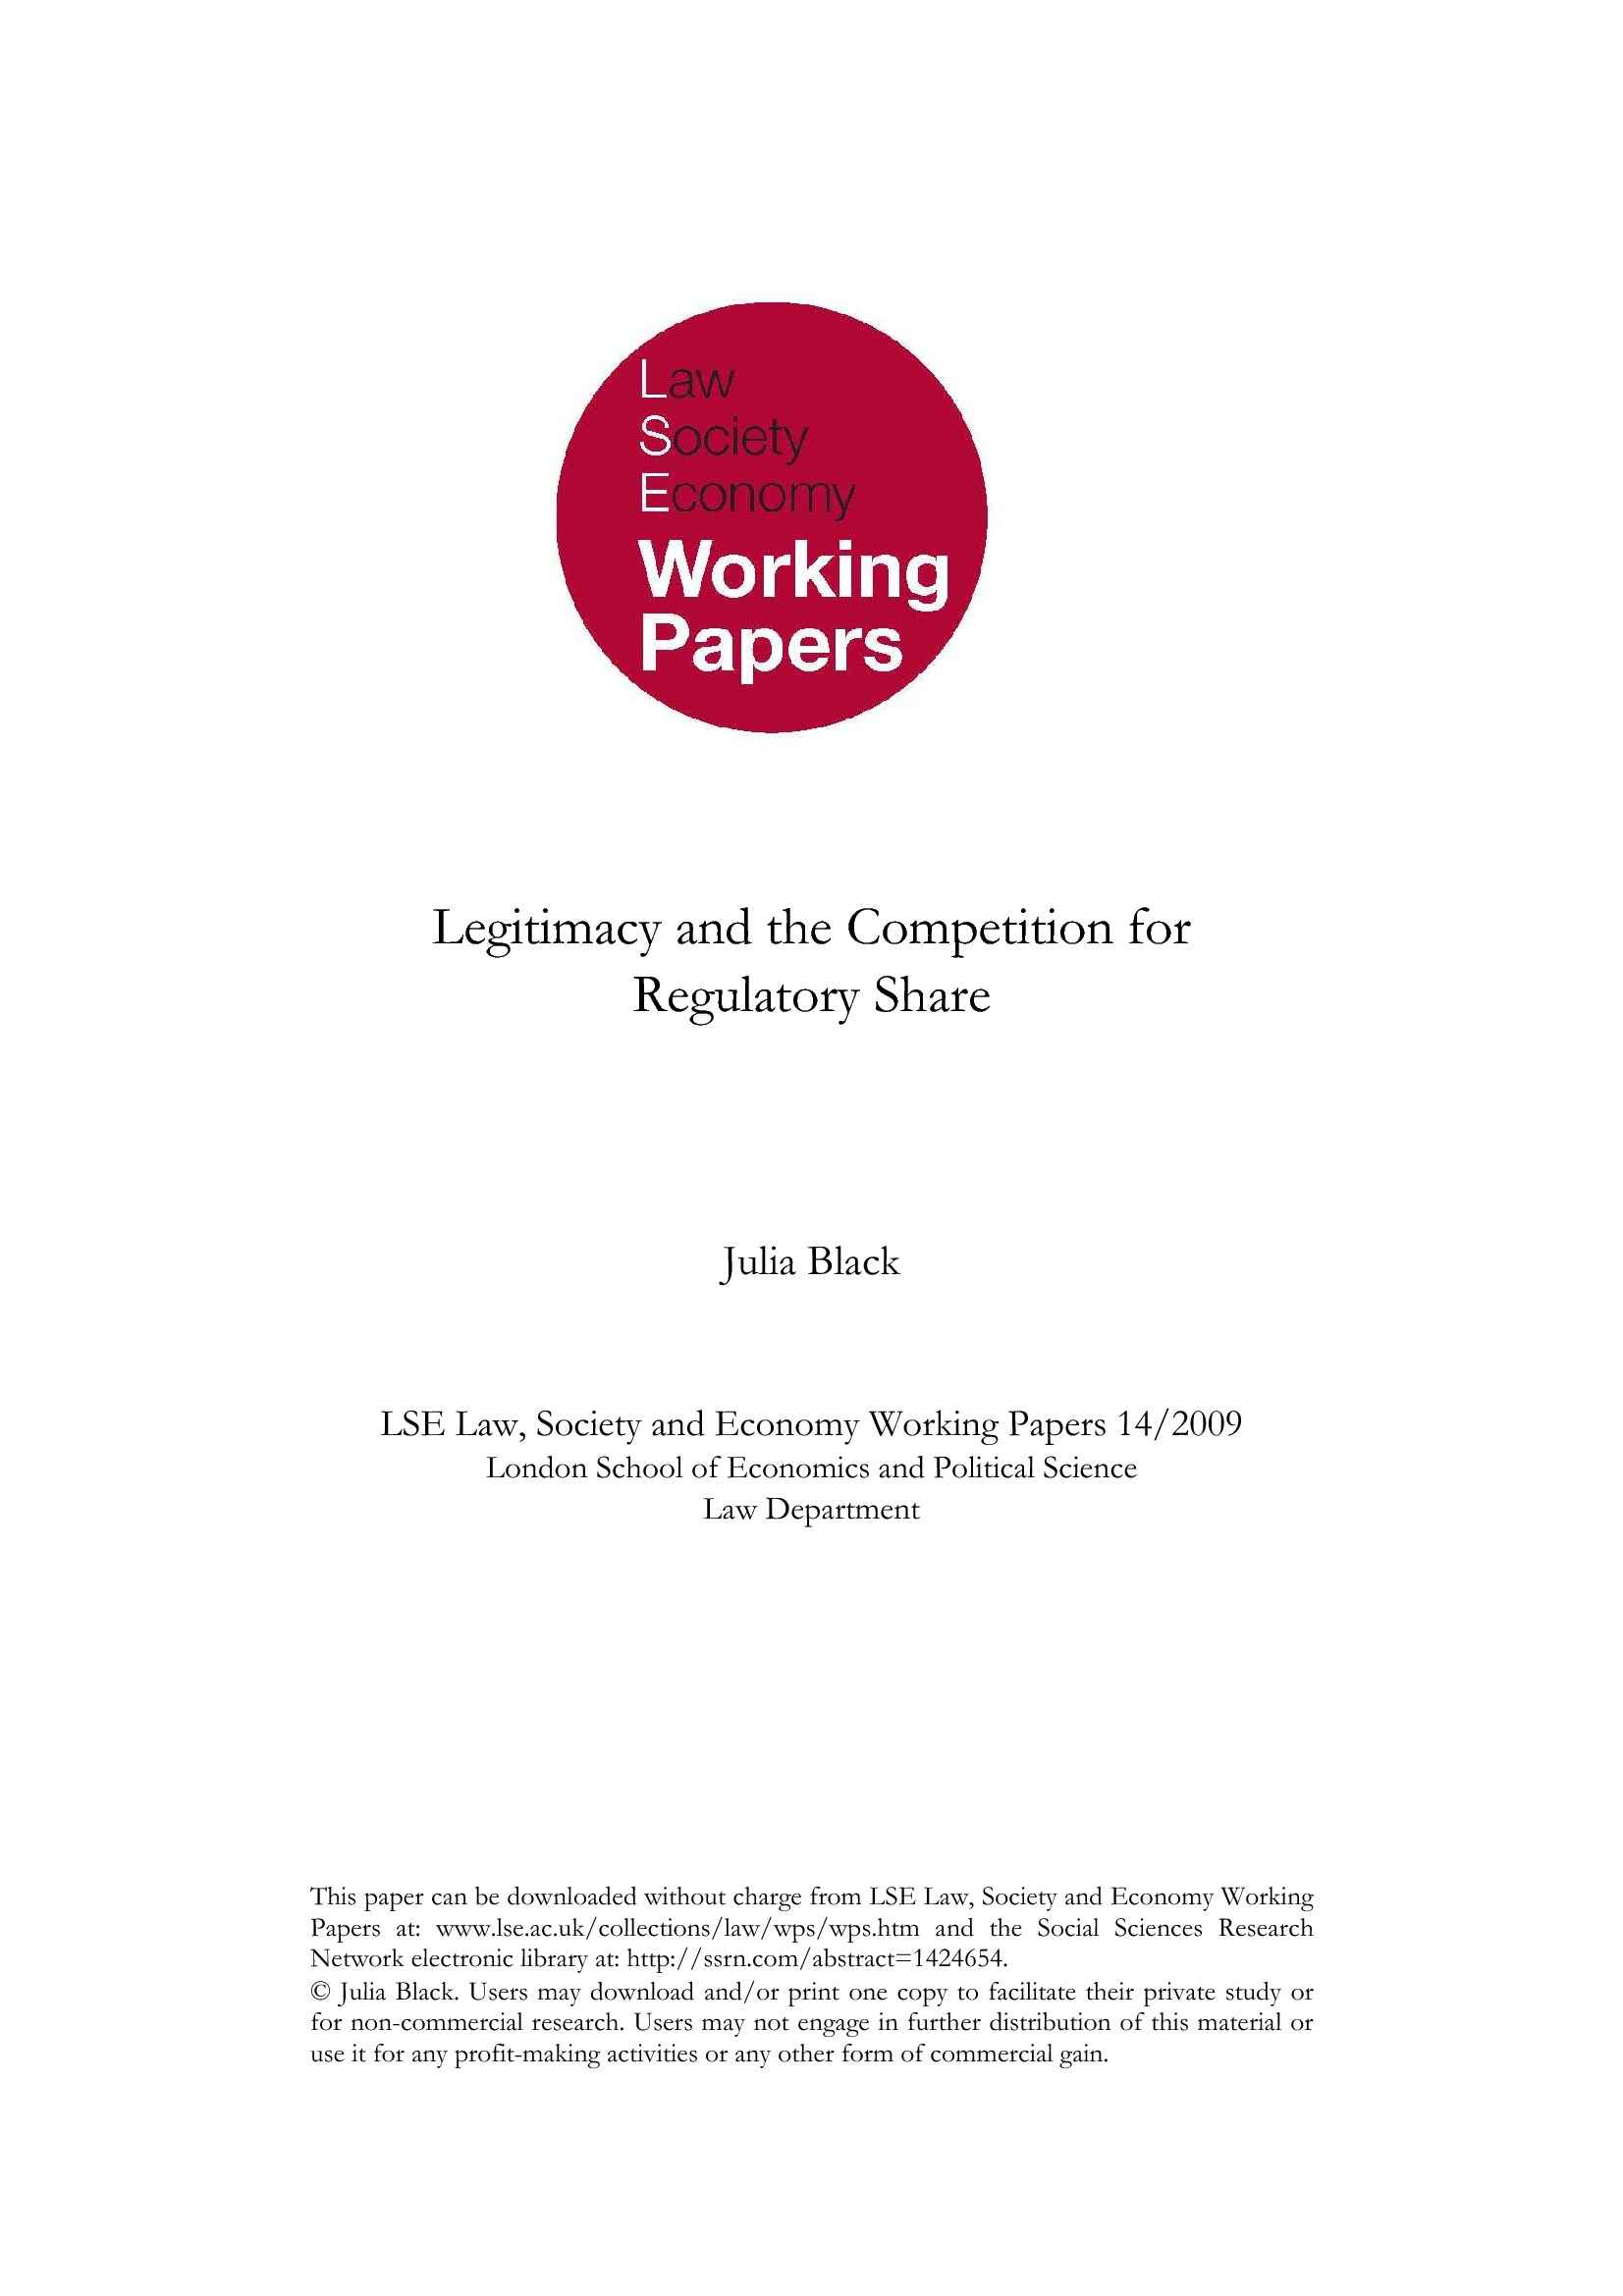 Legitimacy and the Competition for Regulatory Share - J. Black